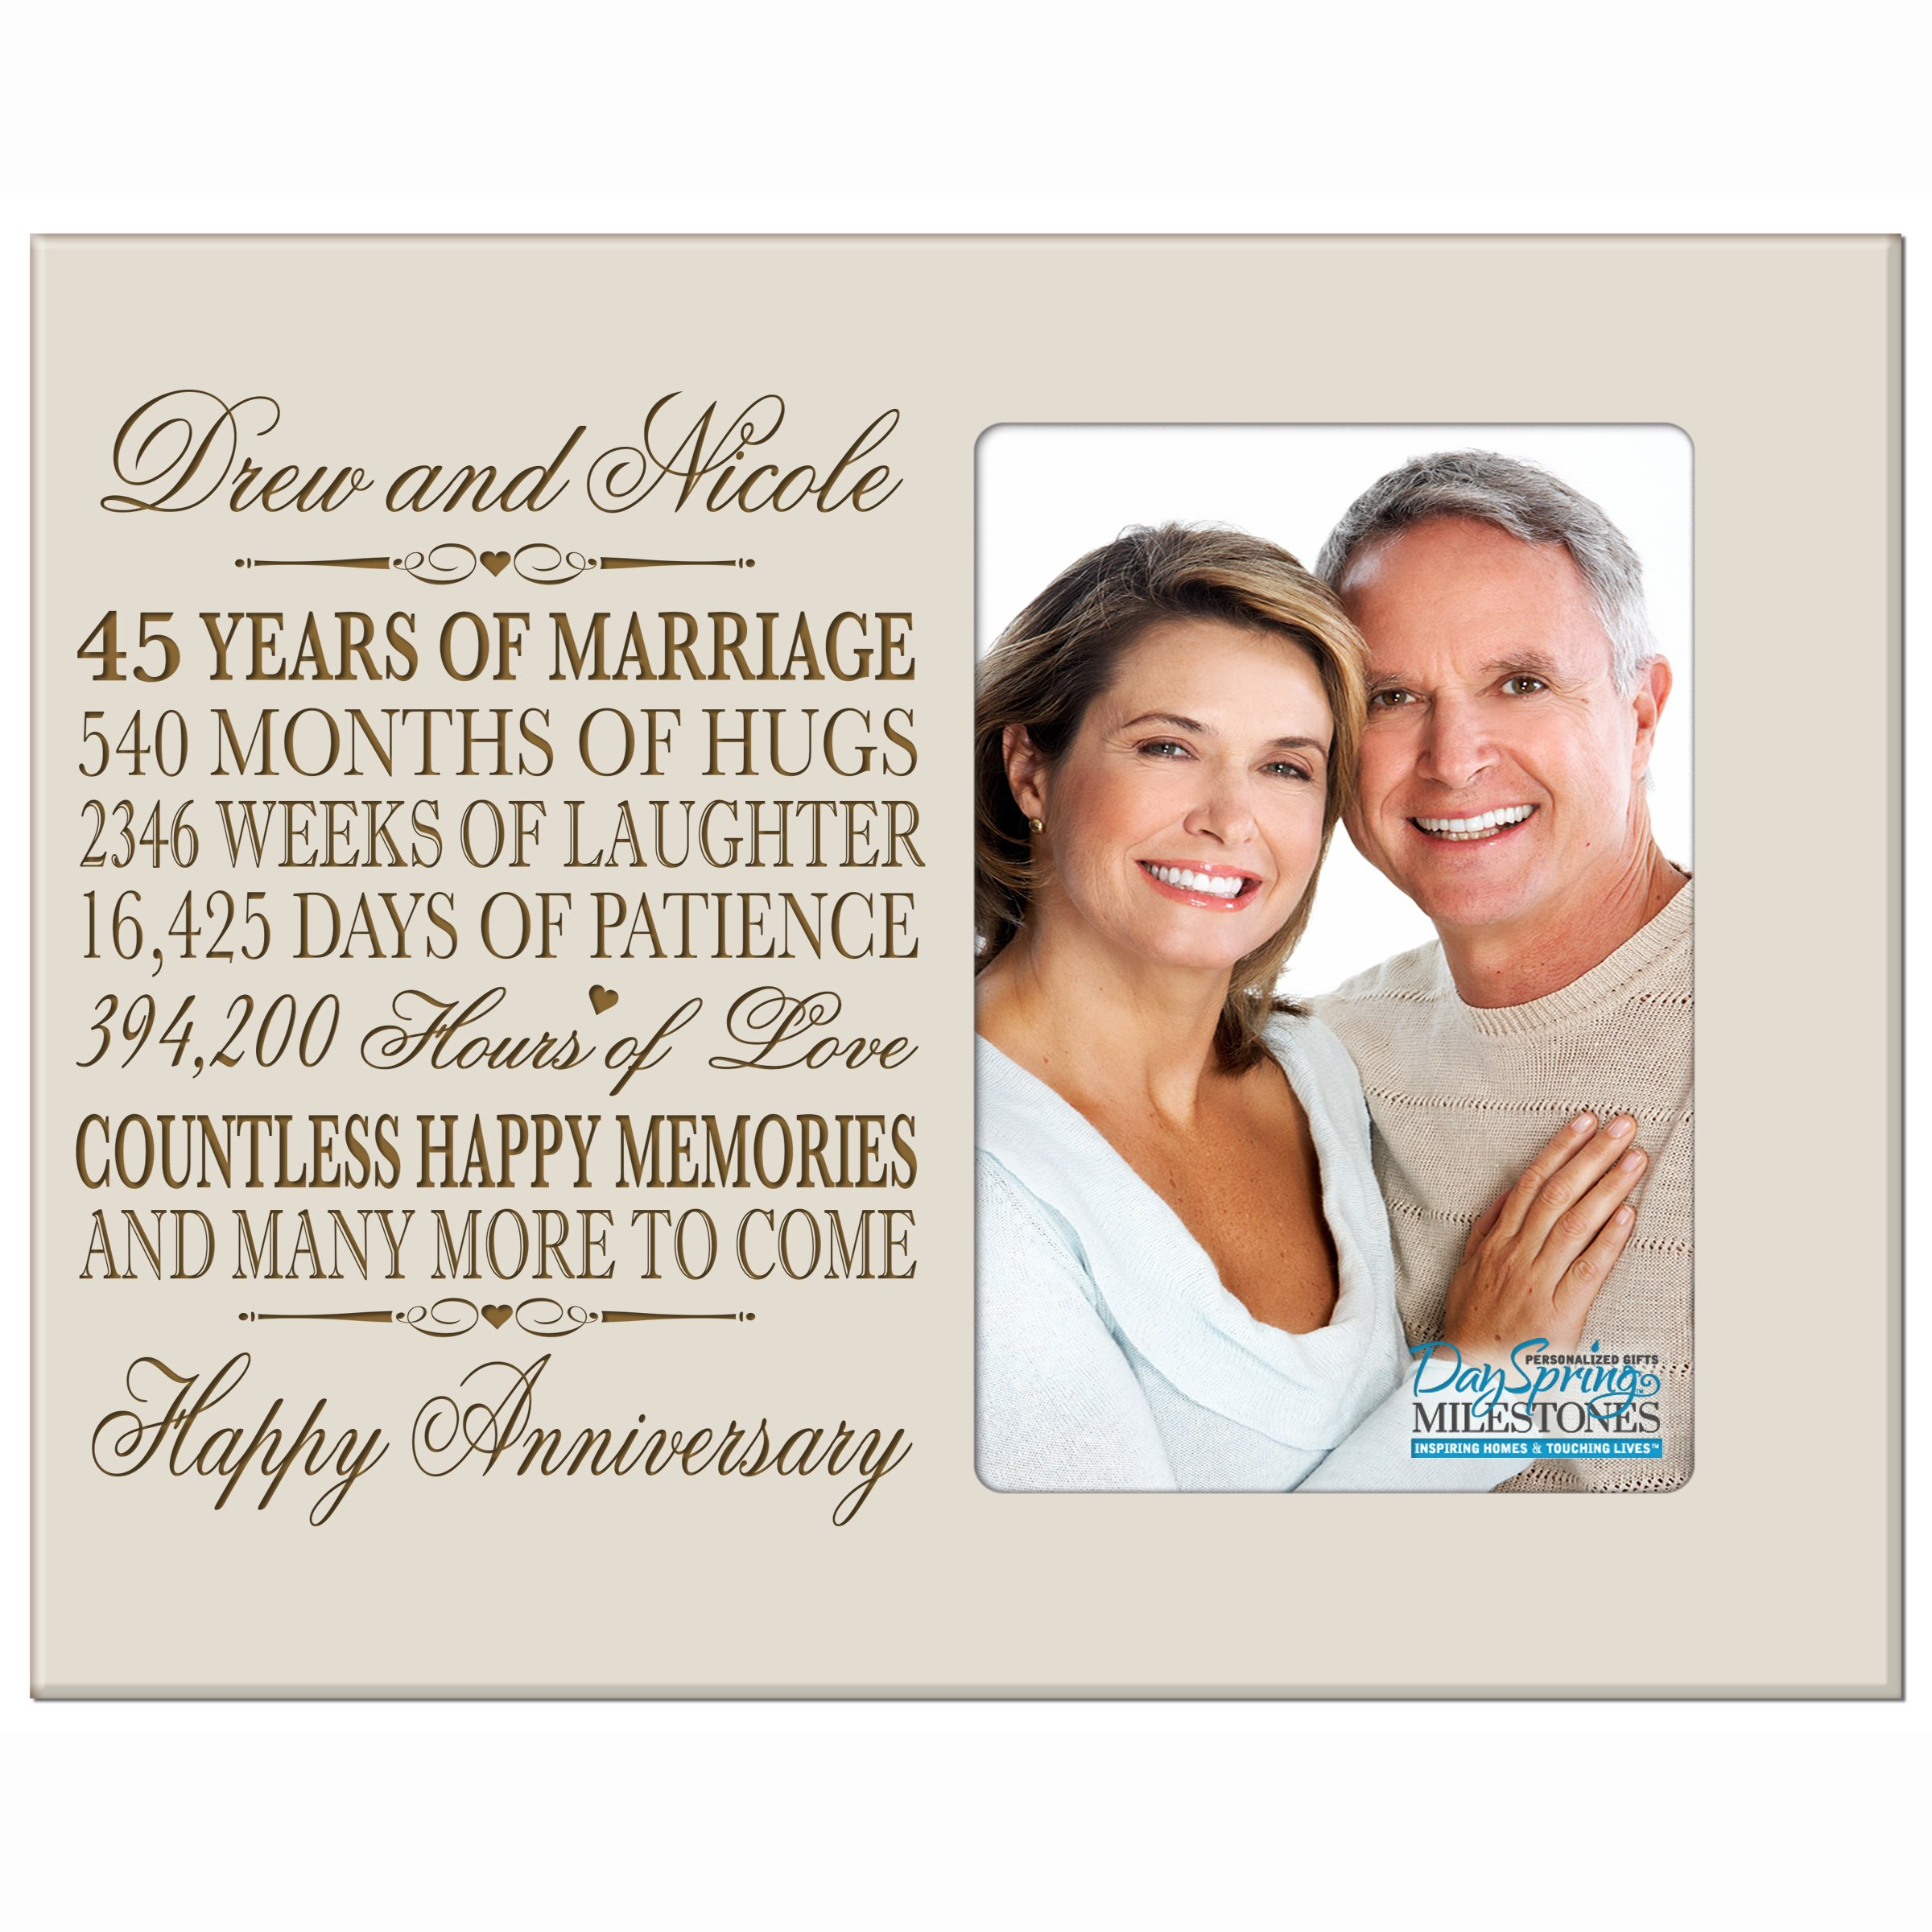 45th Wedding Anniversary Gift.Buy Personalized 45th Year Wedding Anniversary Frame Gift For Couple